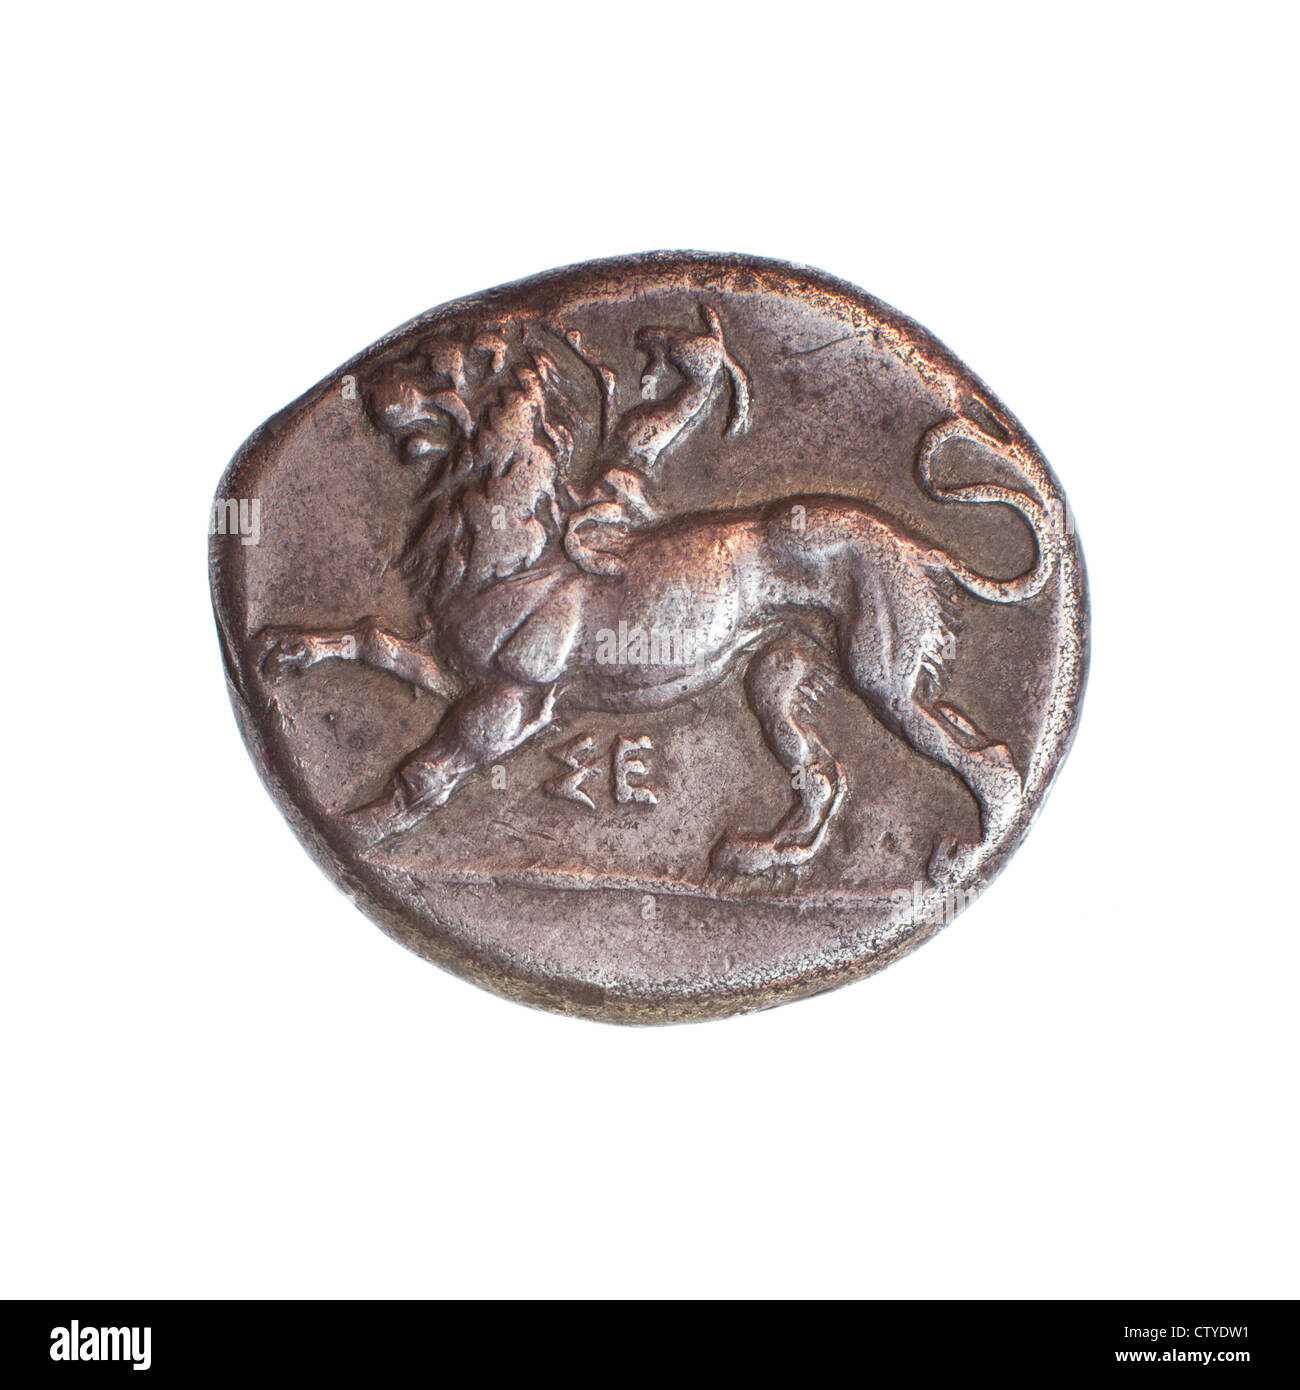 Peloponnesos, Sikyo, 430-390 BCE Silver stater Ancient Greek coin (private collection) - Stock Image